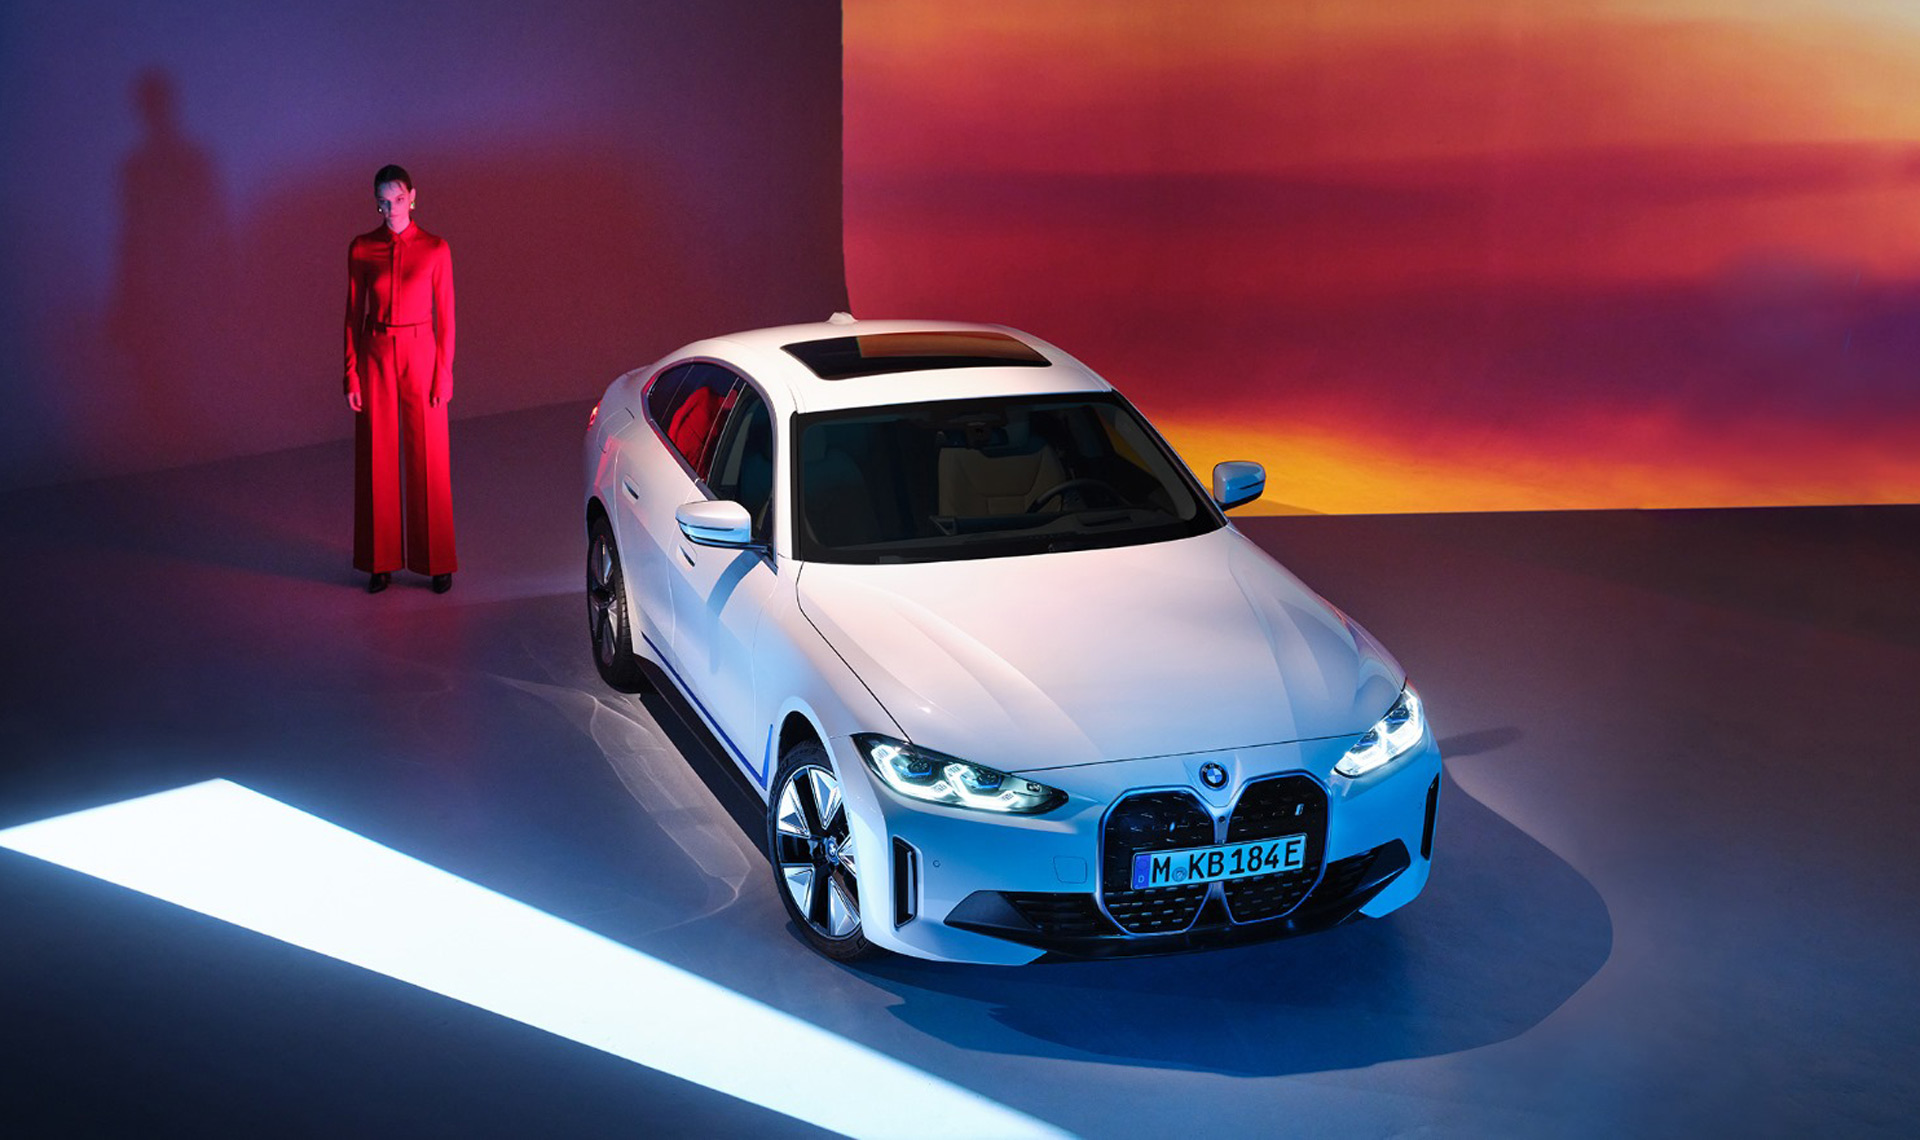 Hans Zimmer composes sound for BMW EVs, including distinct sound for electric M cars